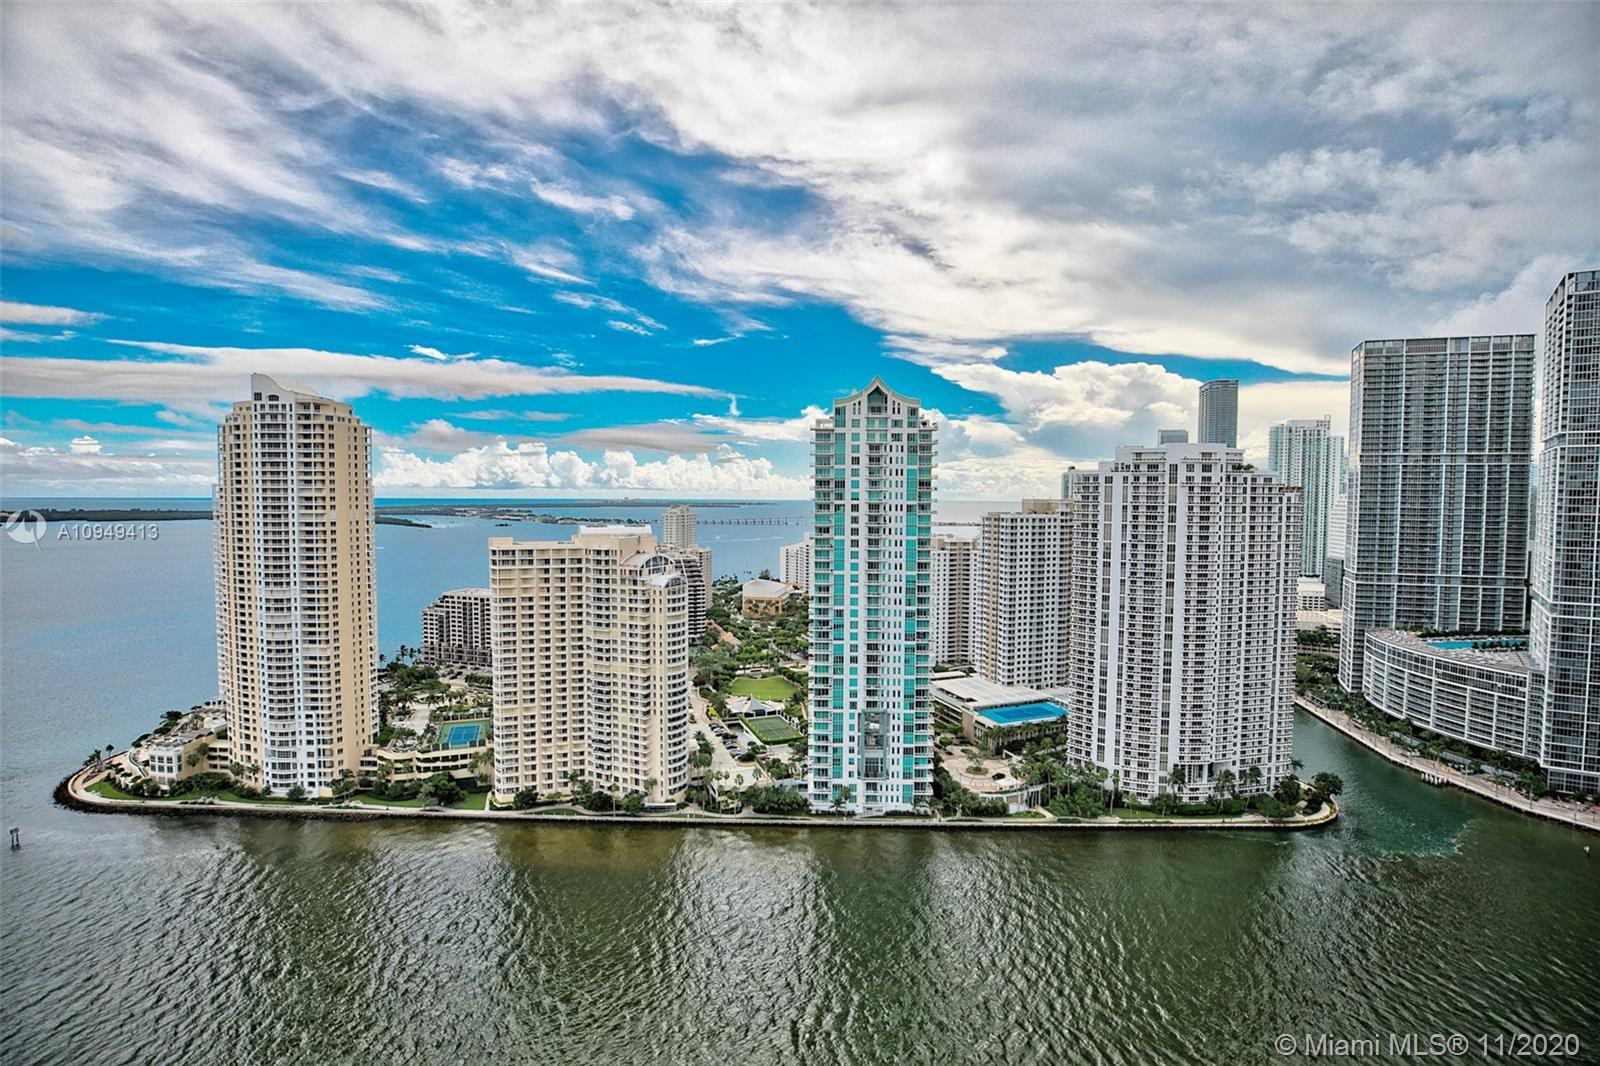 Beautiful 2bdrms 2bths with direct views of Biscayne Bay, Miami River and Brickell Skyline. Condo is